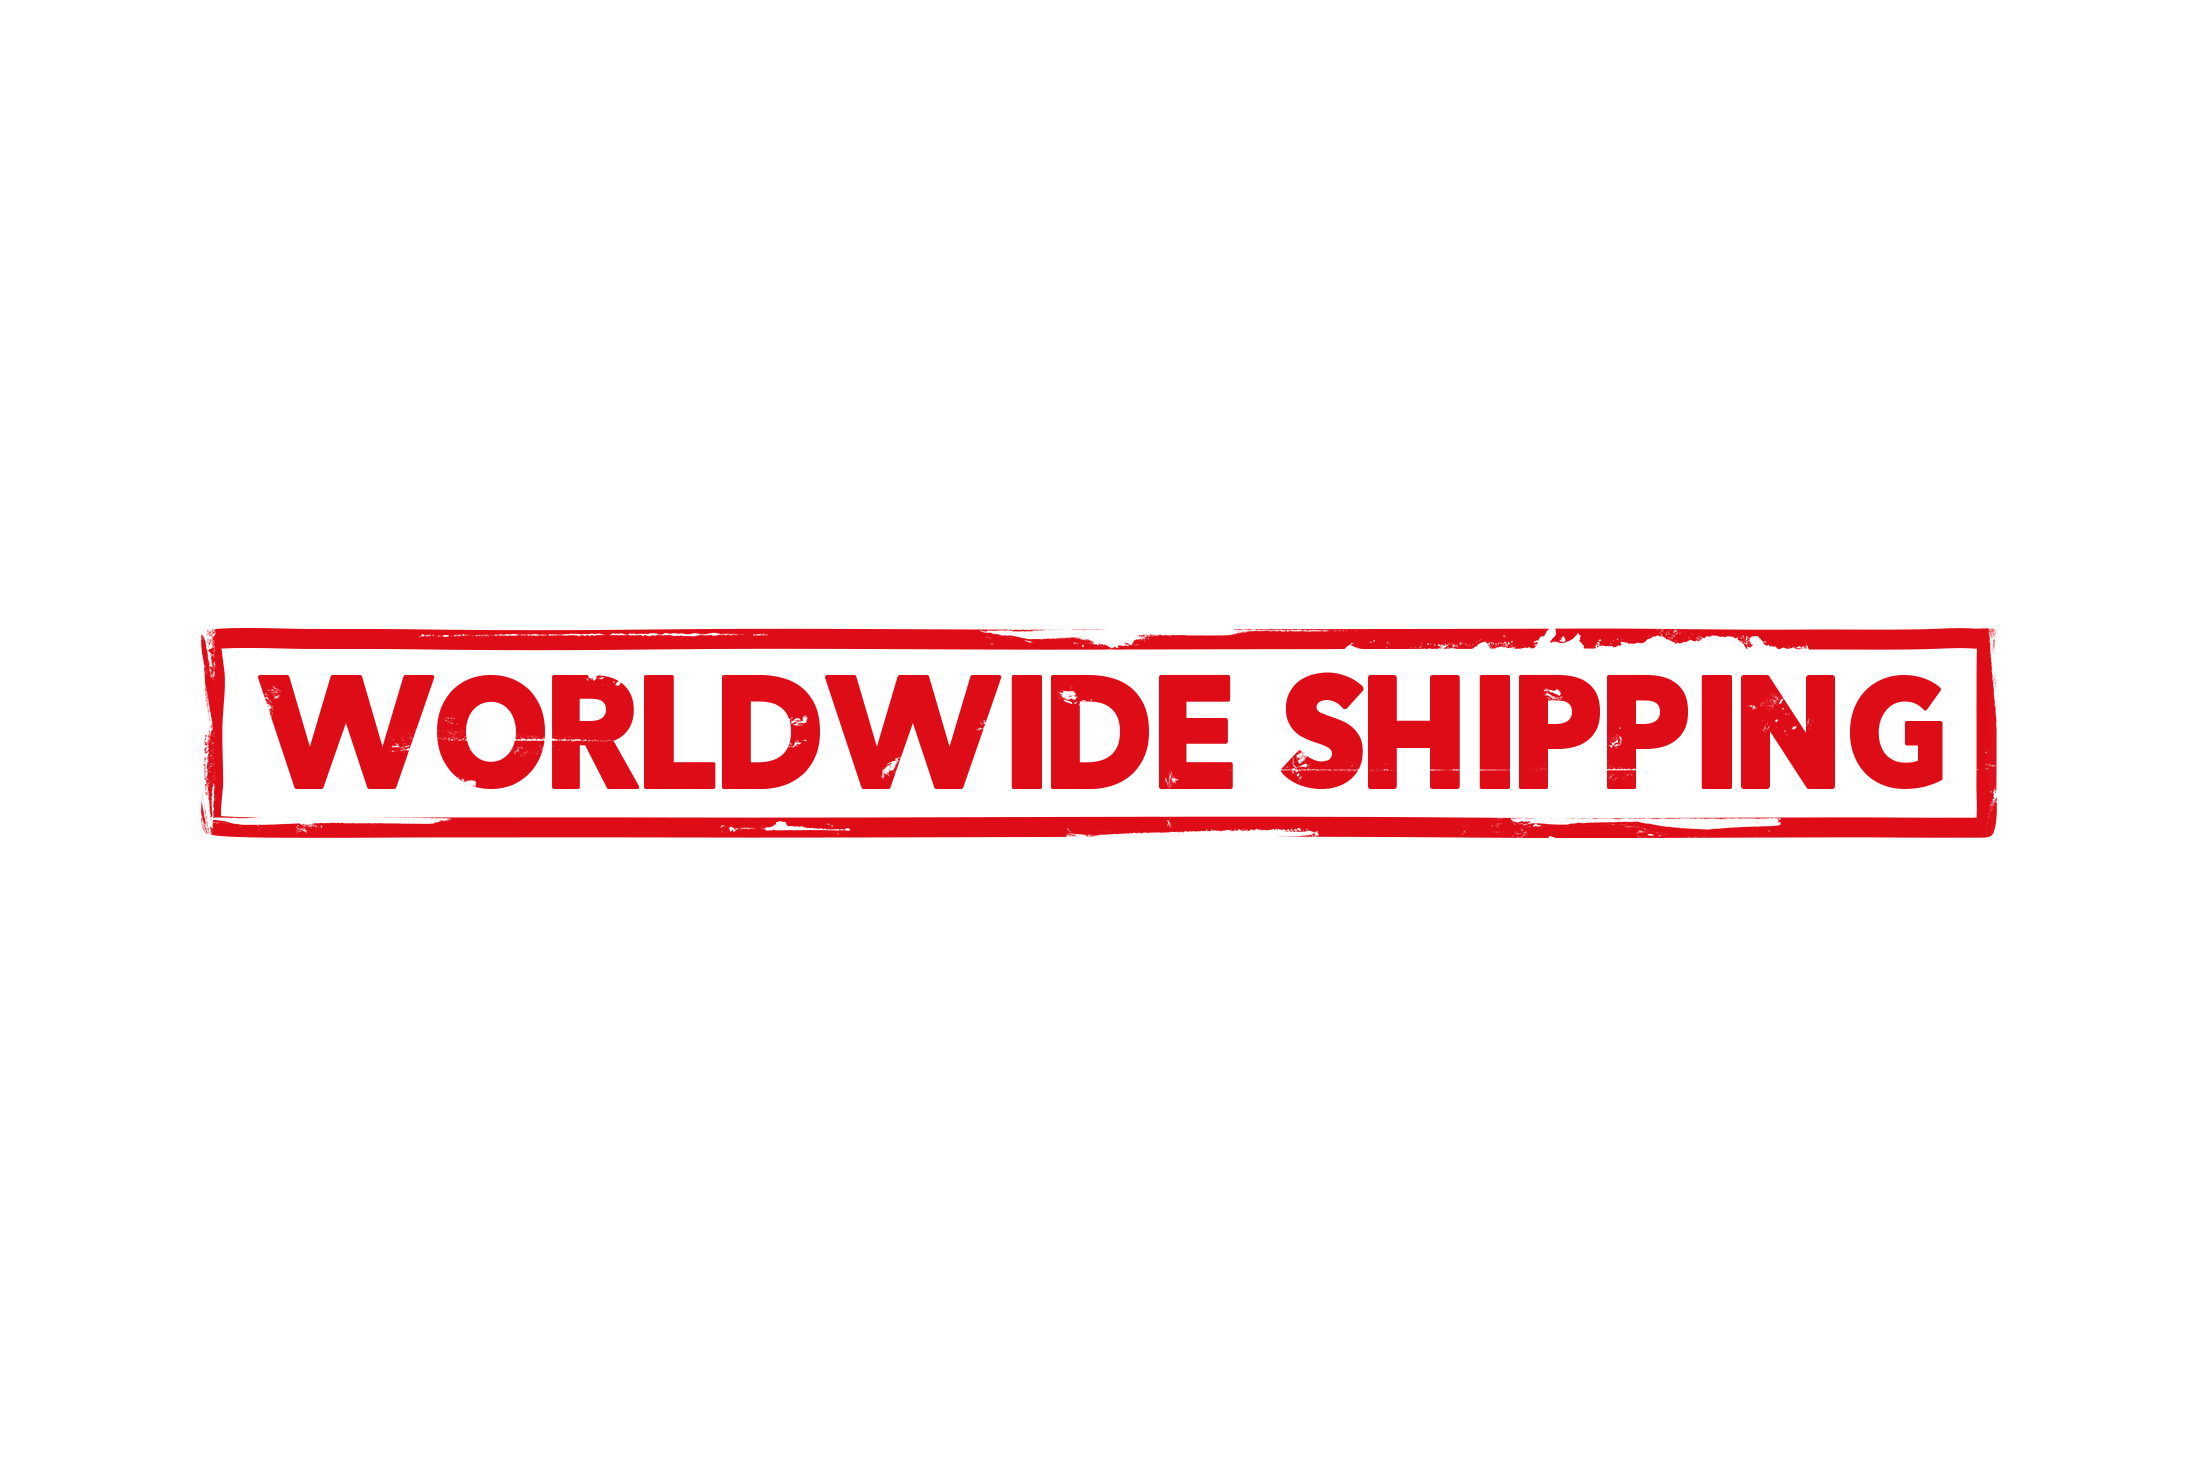 Worldwide shipping stamp PSD